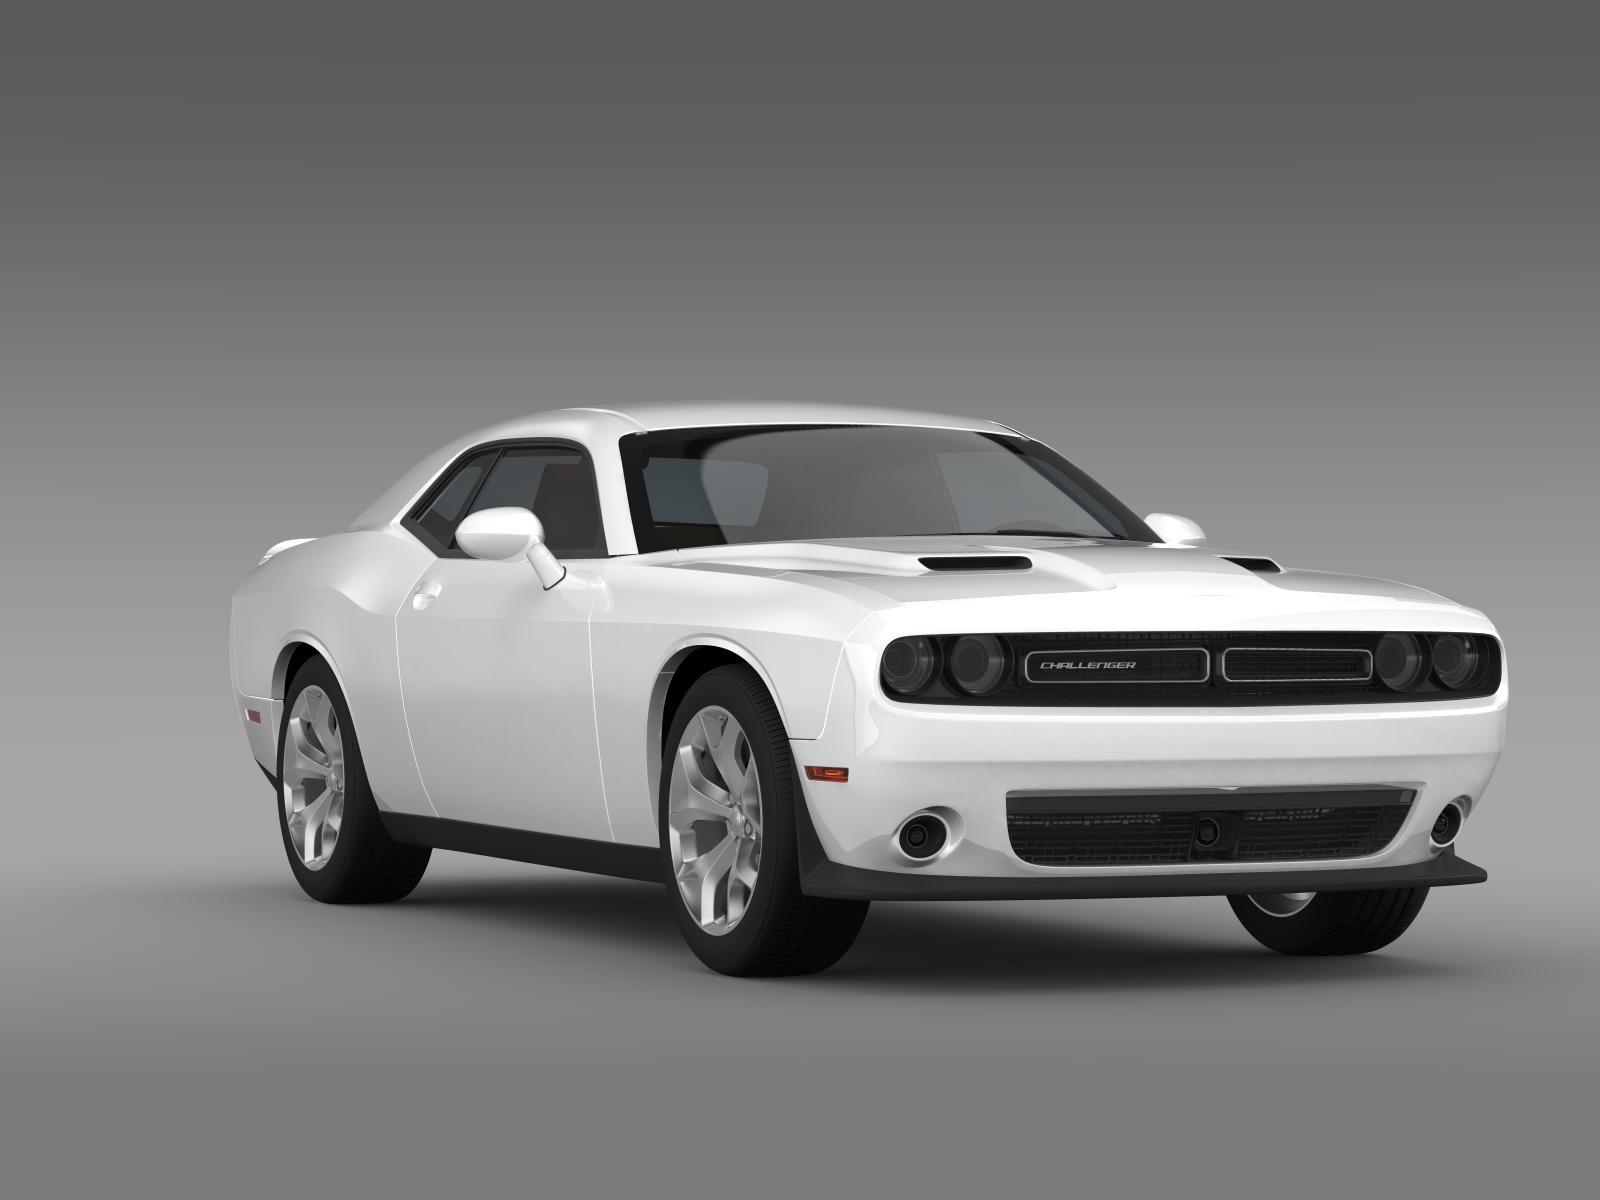 dodge challenger sxt lc 2015 by creator 3d 3docean. Black Bedroom Furniture Sets. Home Design Ideas